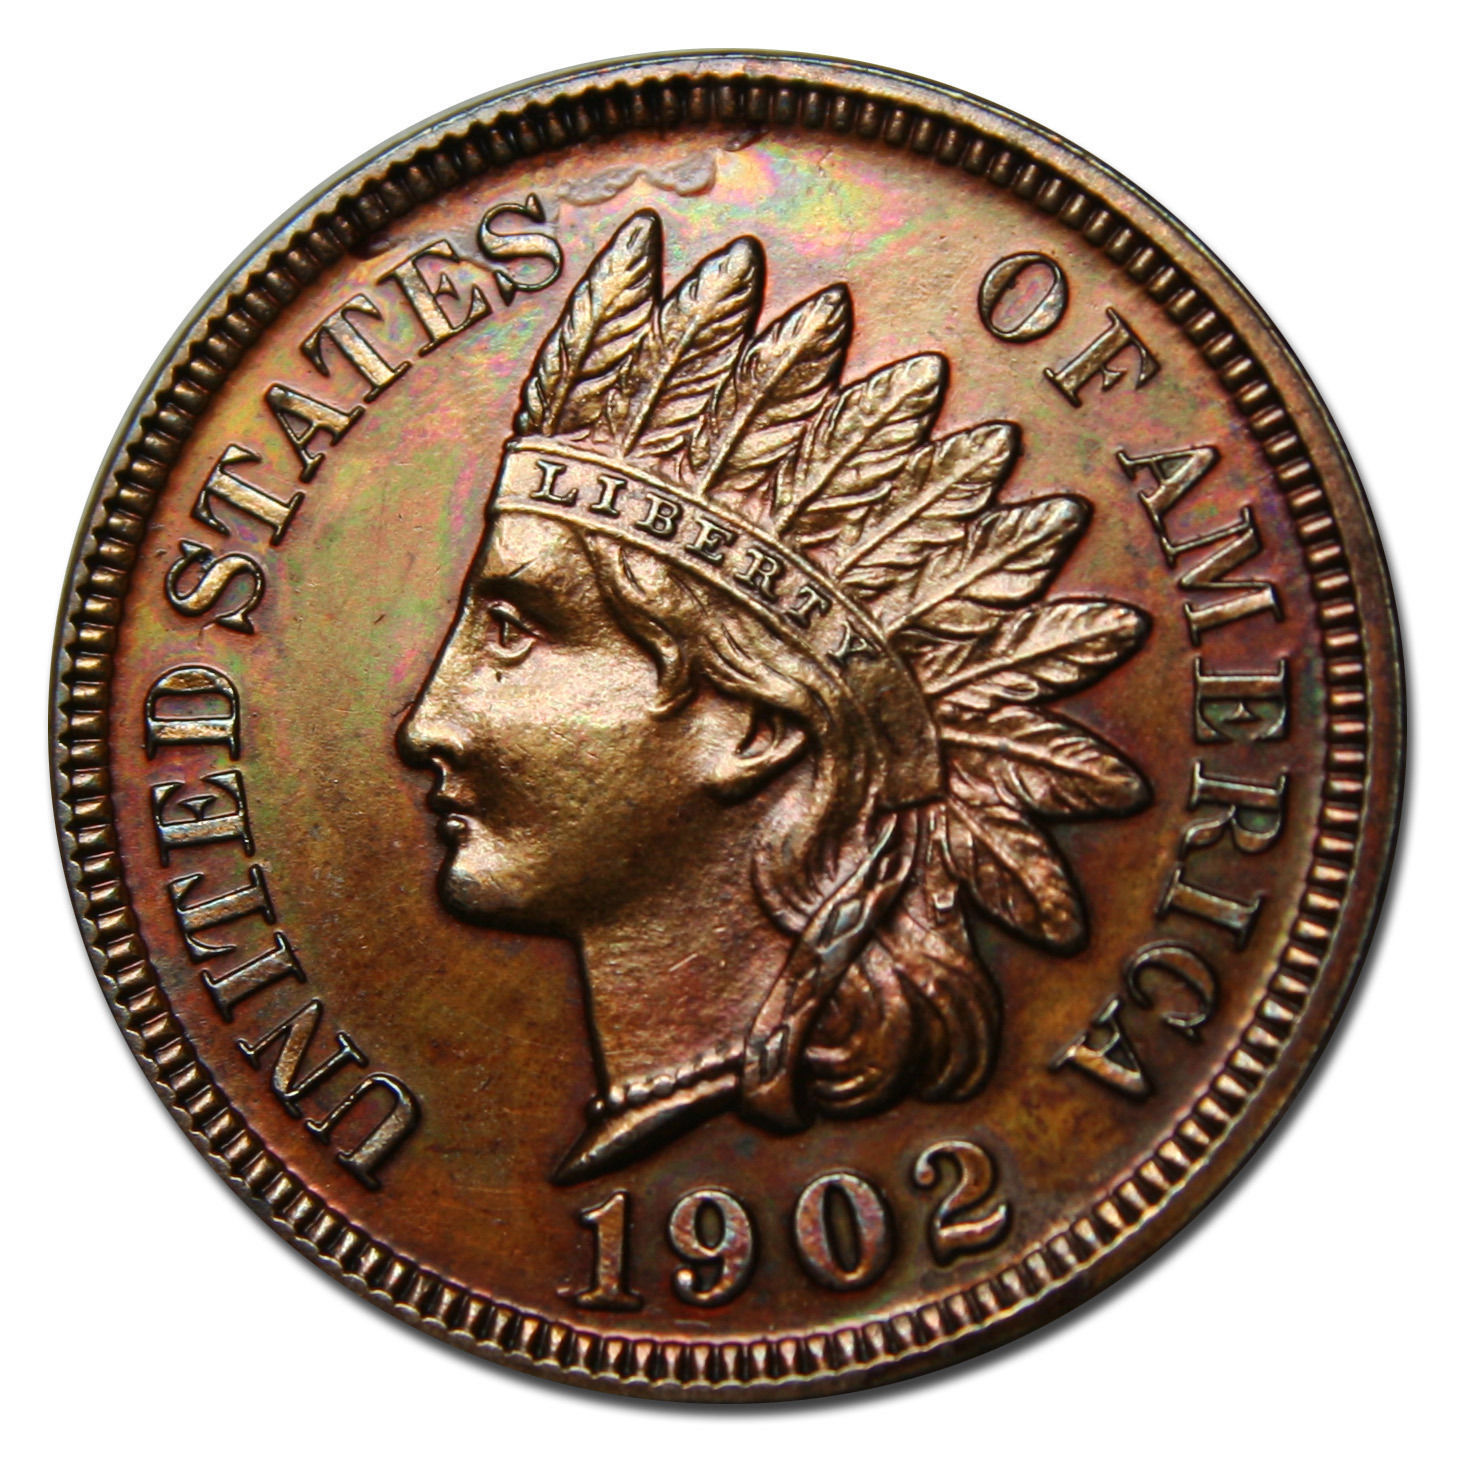 1902 Proof One Cent Indian Head Penny Coin Lot# MZ 3748